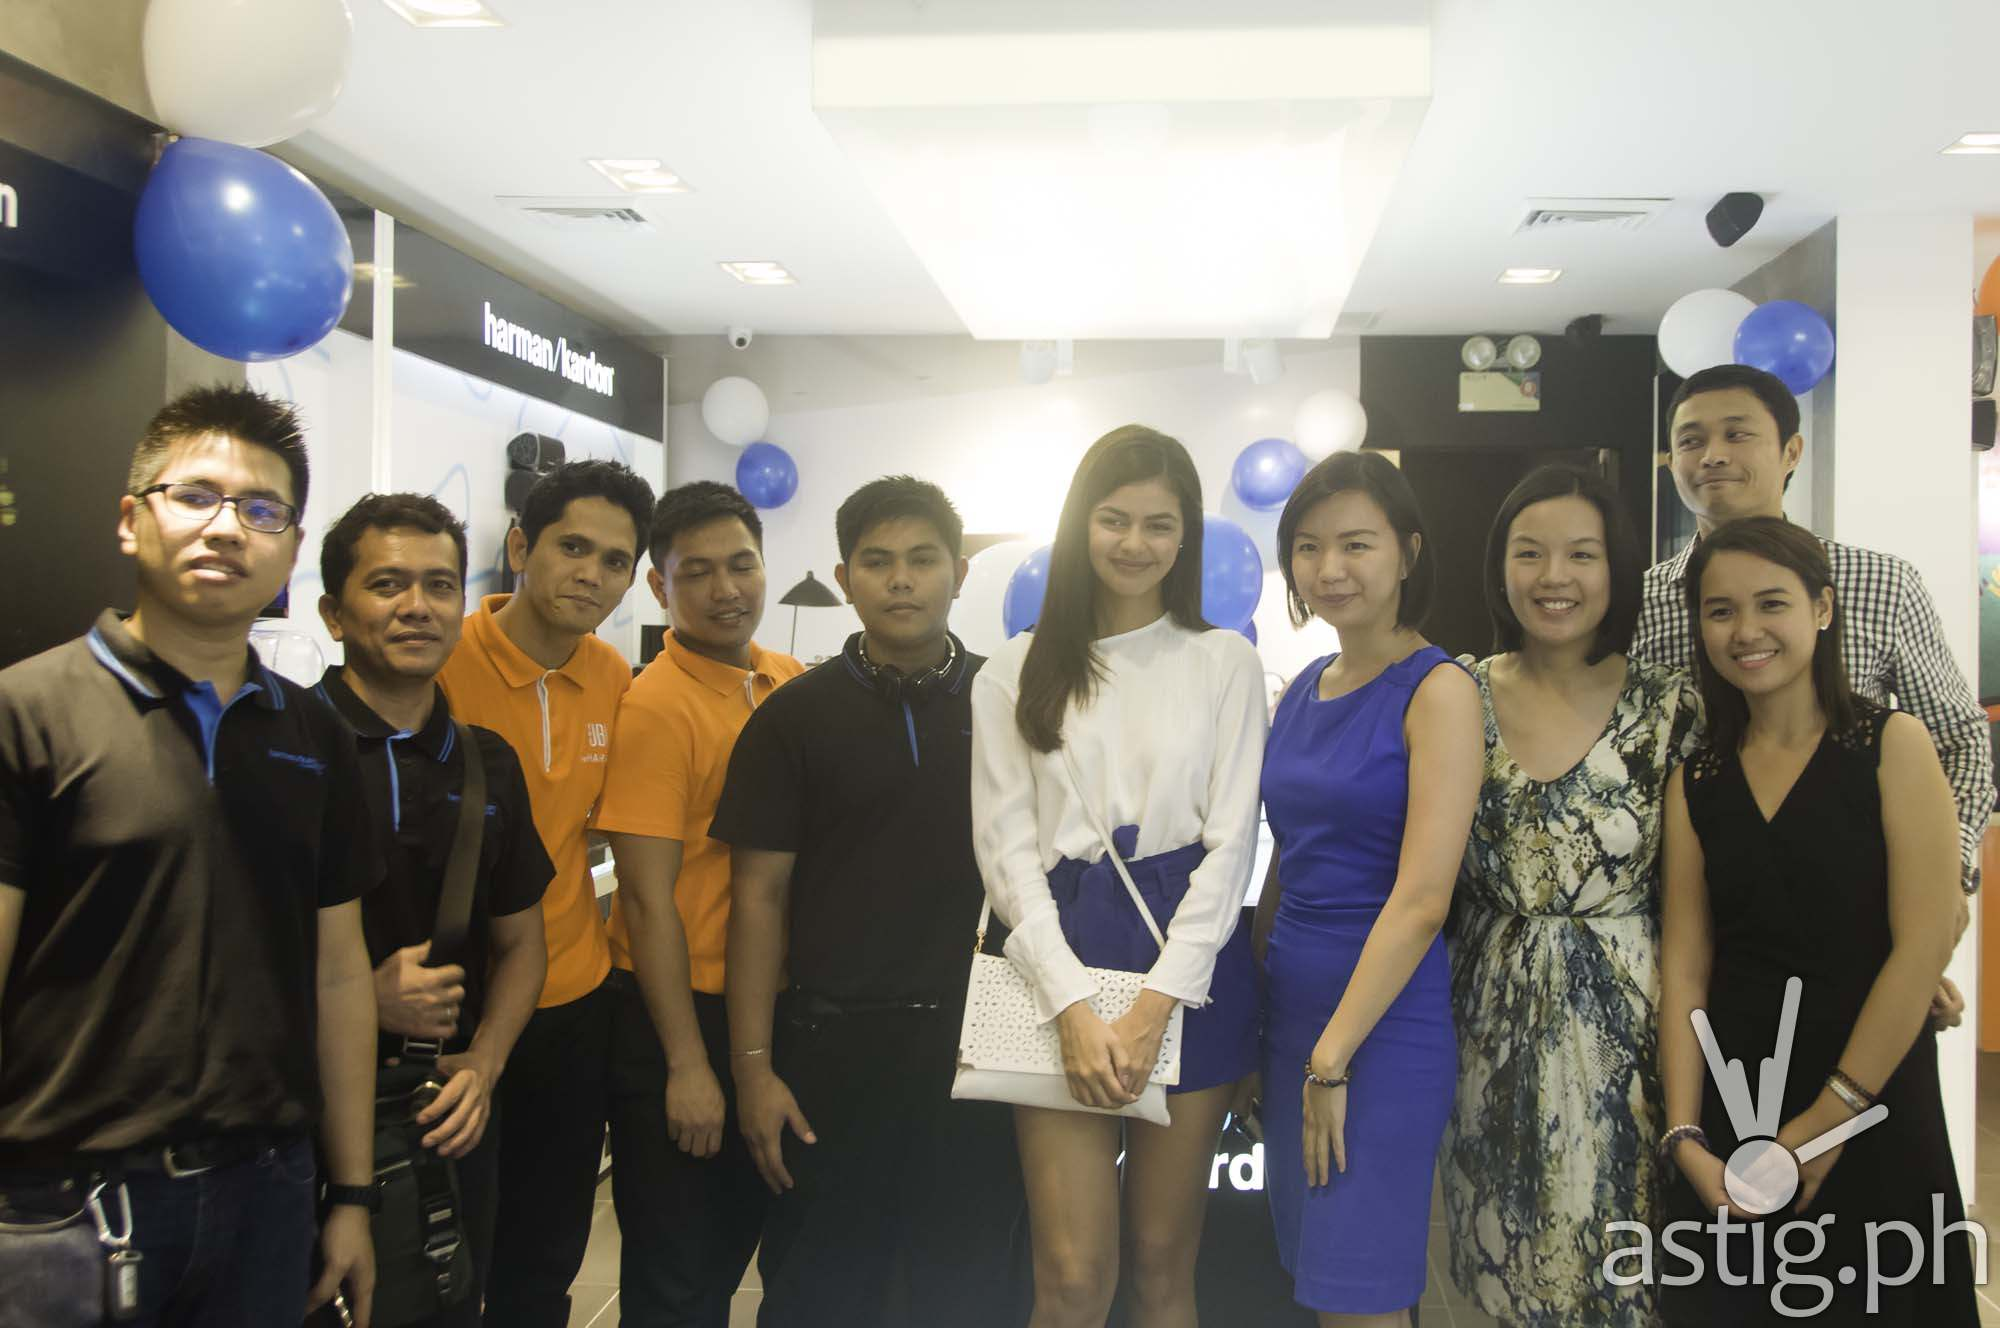 Jeanine Gutierrez at the JBL Harman Kardon opening at Ayala Fairview Terraces